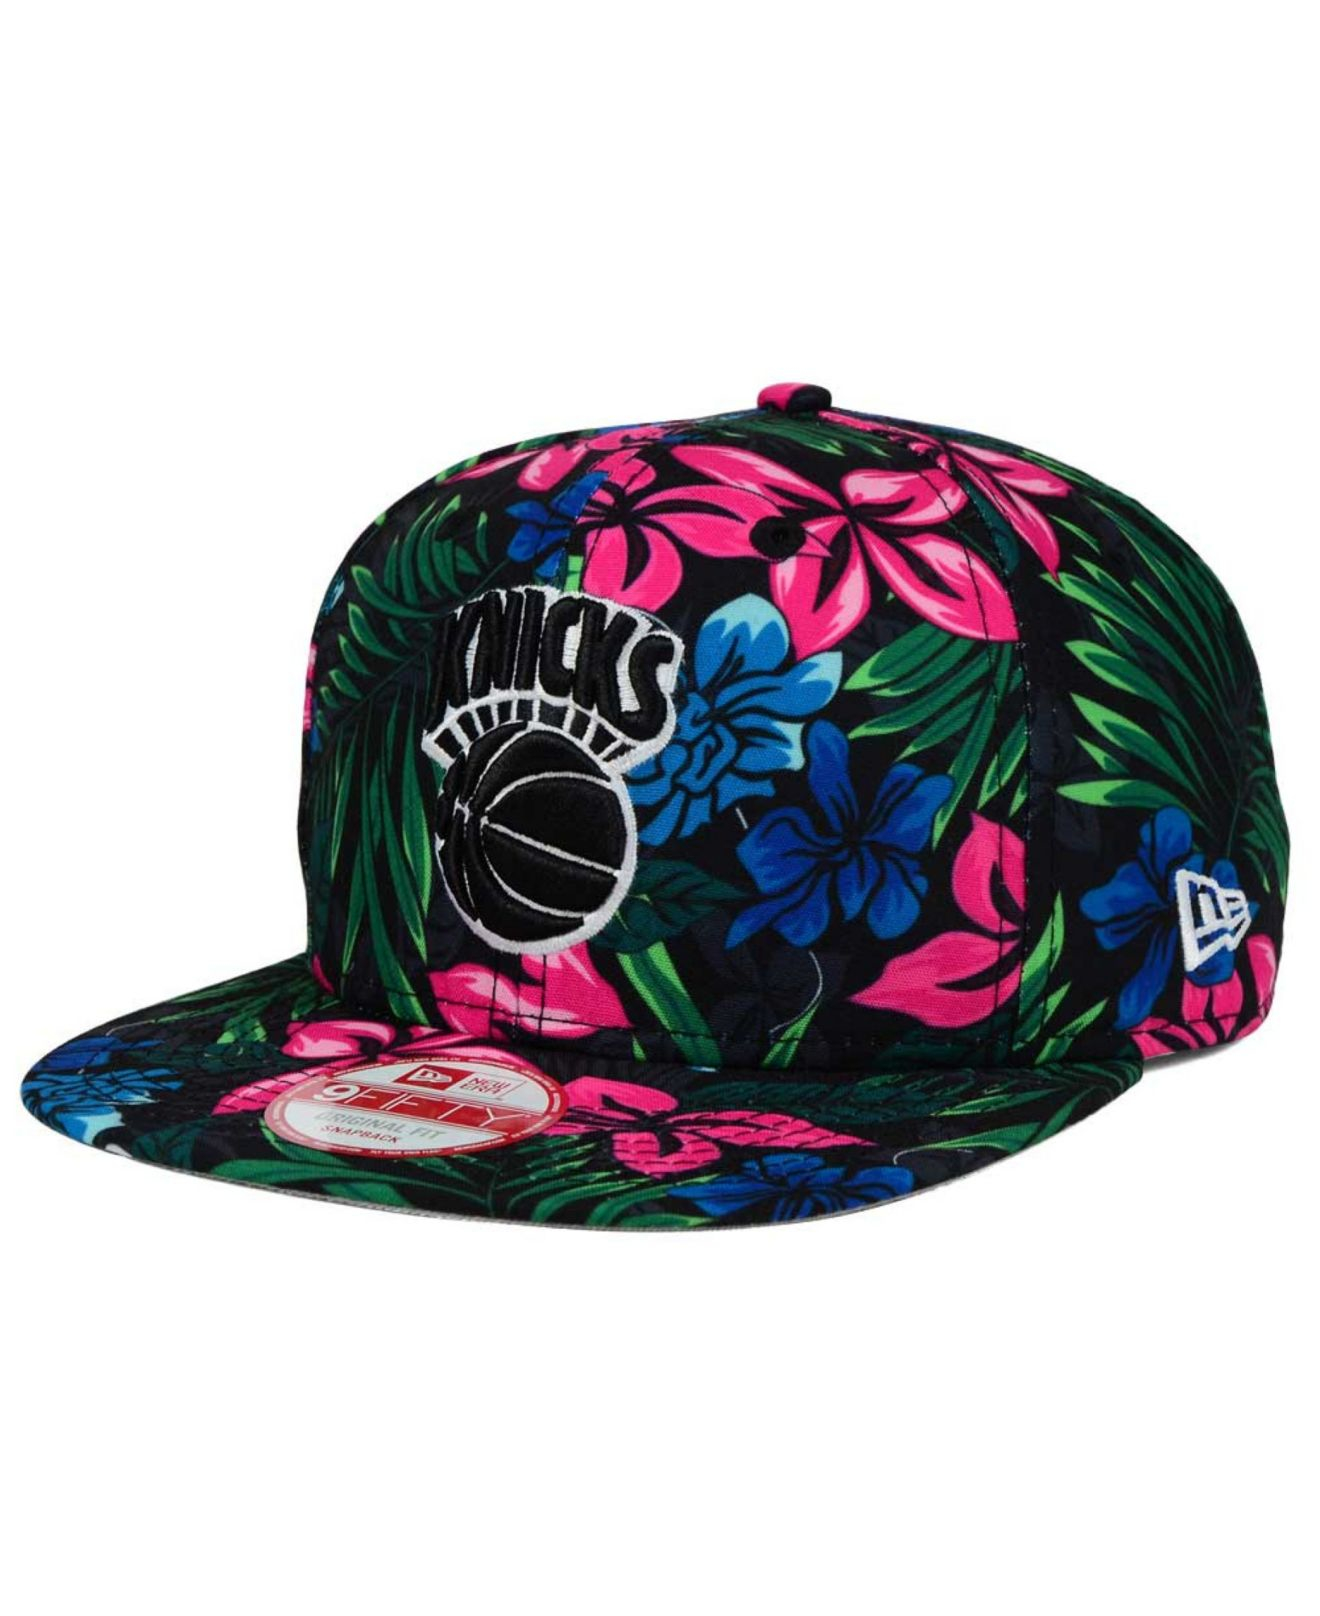 ... reduced lyst ktz new york knicks shadow floral 9fifty snapback cap in  7ae42 b67f7 ... f3a70c31a42